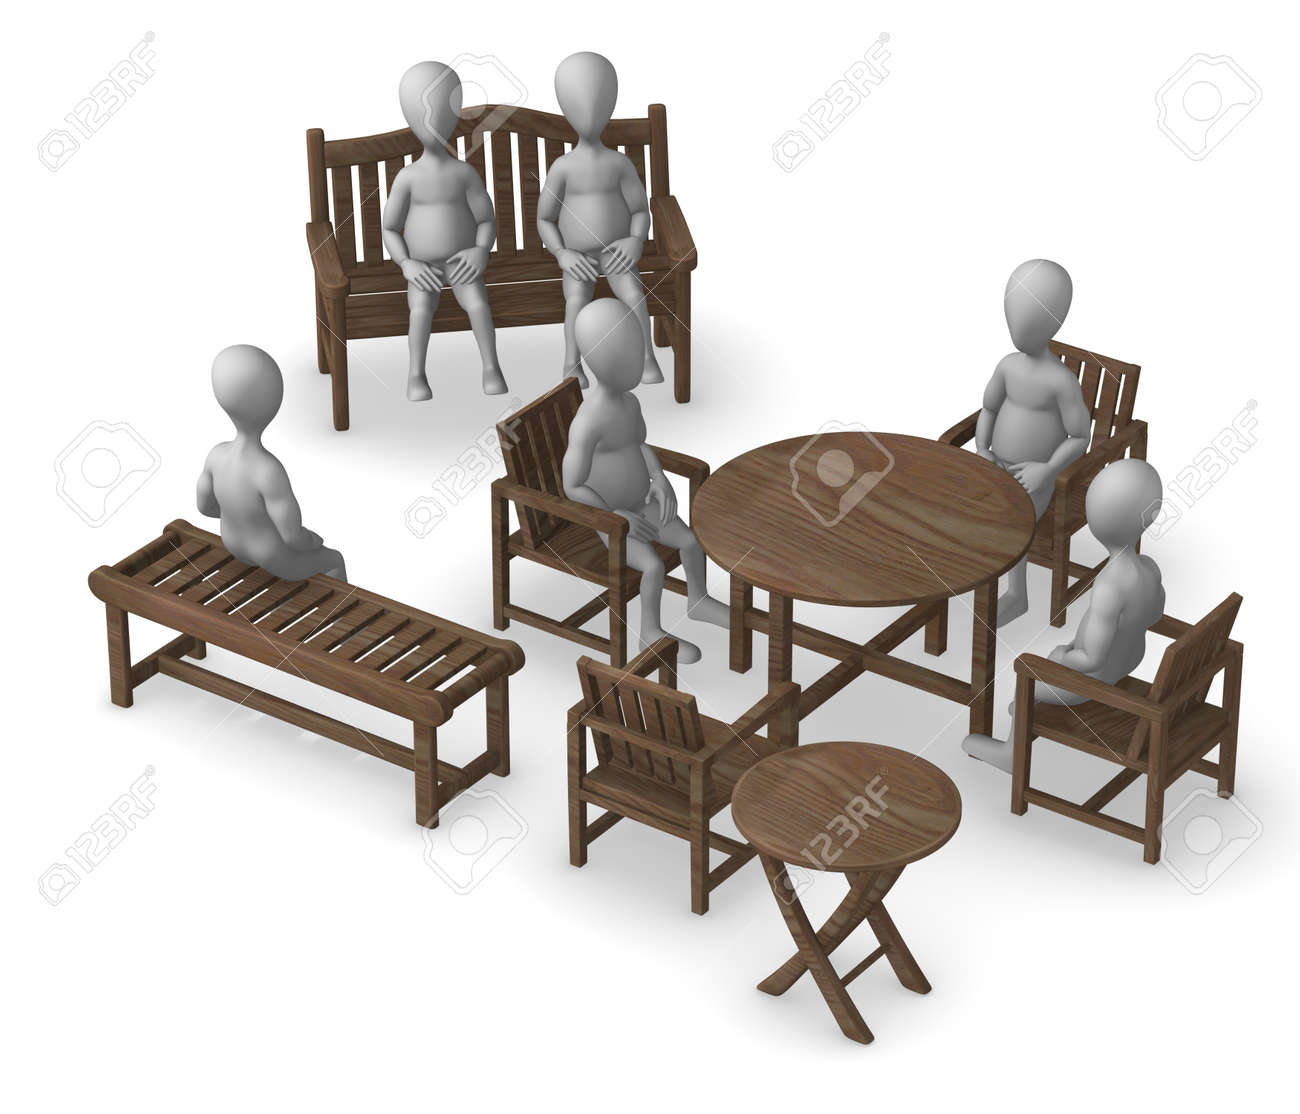 3d render of cartoon character with garden furniture stock photo 12985616 - Garden Furniture 3d